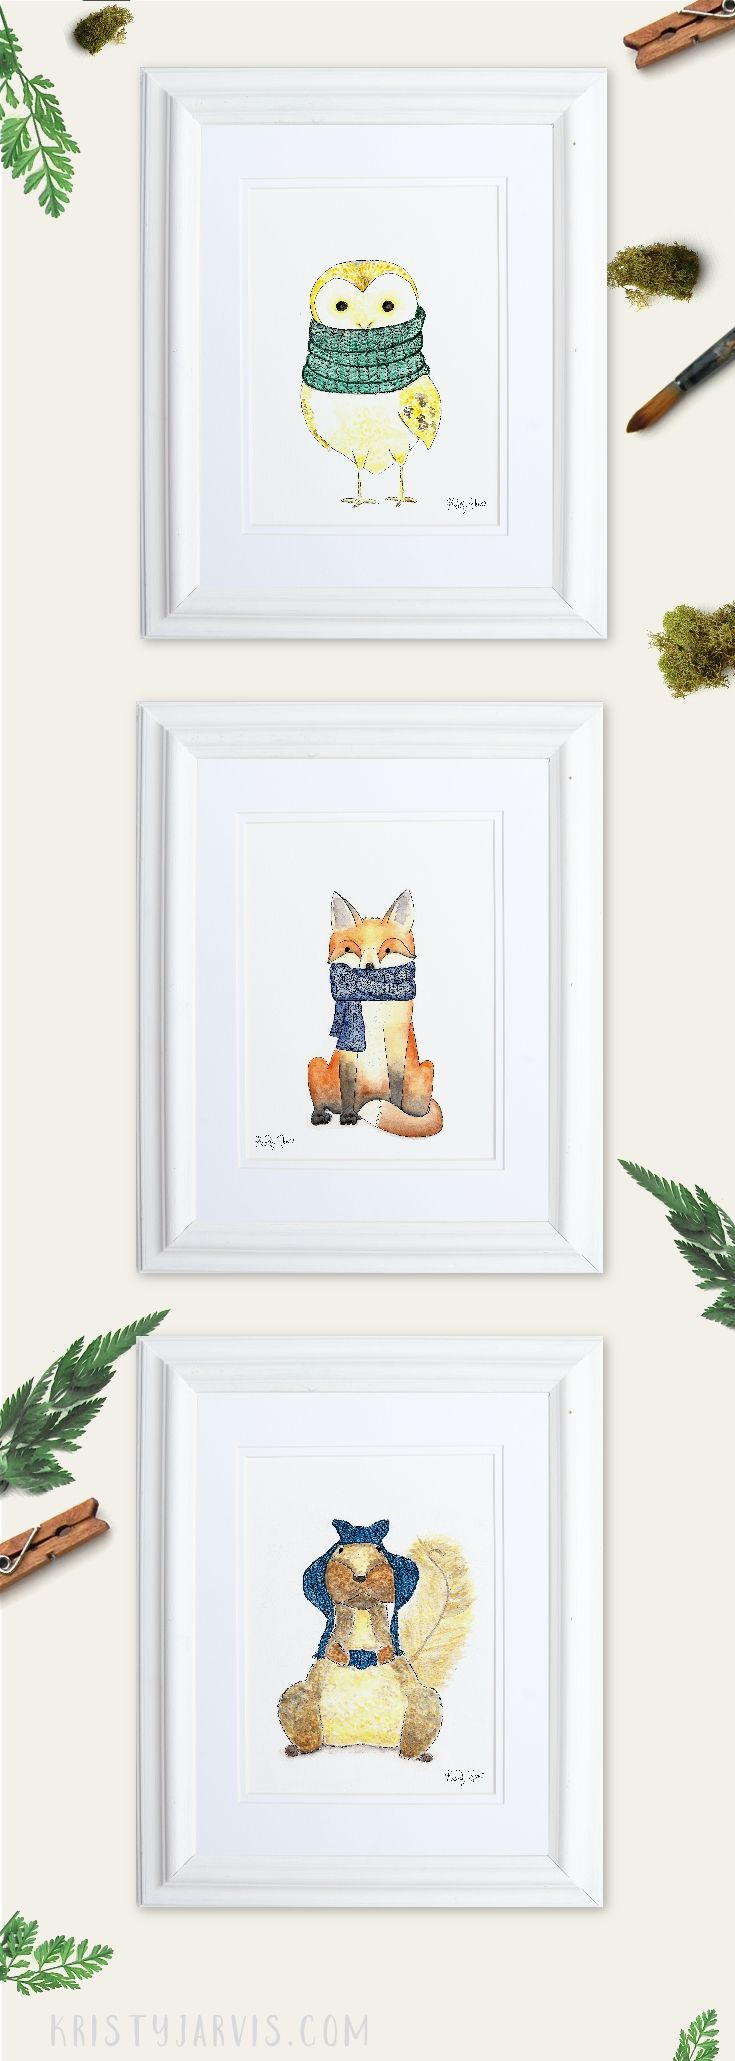 Woodland Animals in Knitwear - Watercolor Owl, Fox, and Squirrel